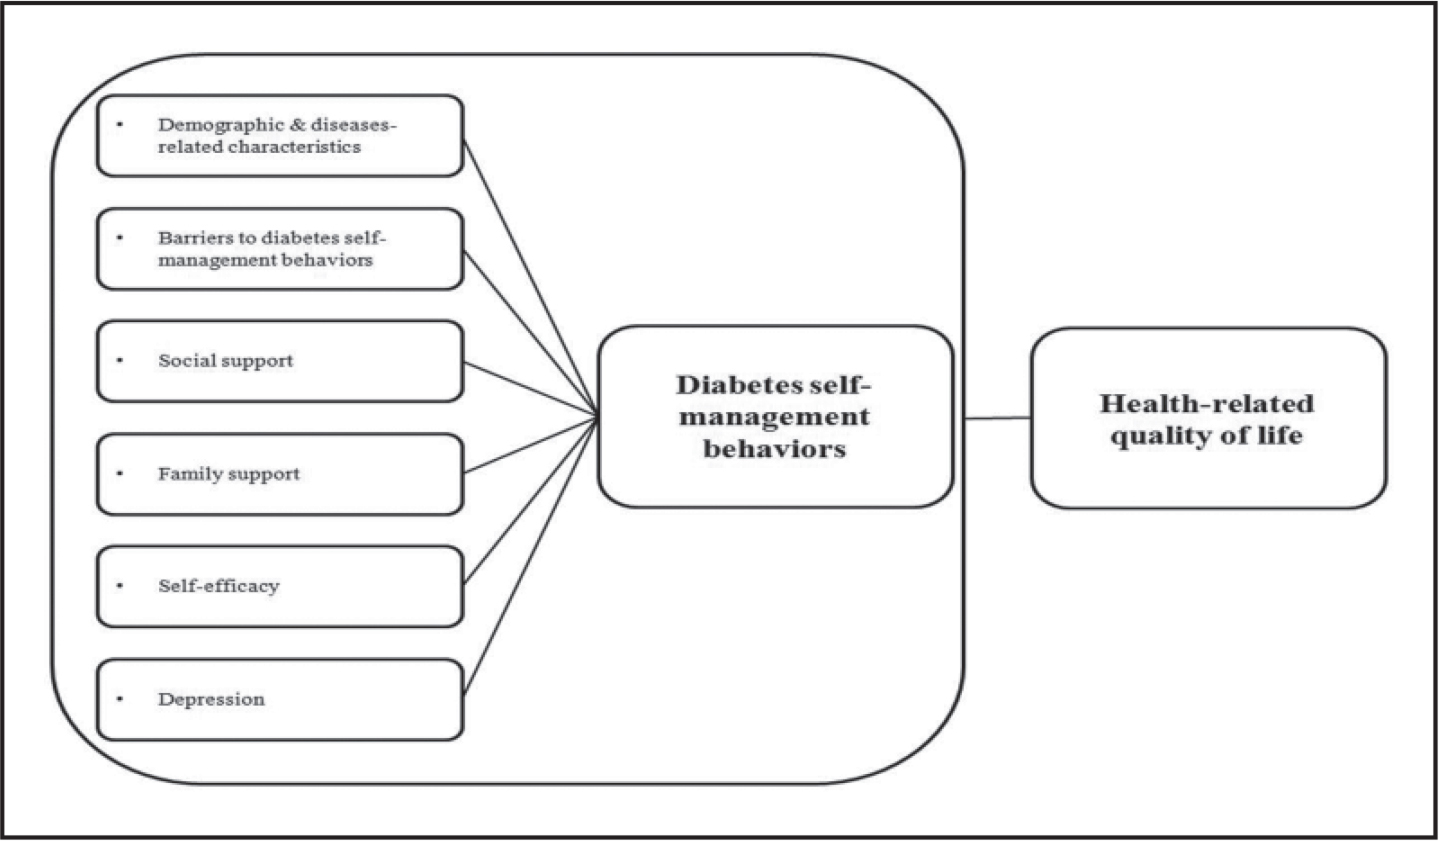 Evaluation of Adherence Should Become an Integral Part of     Psychosocial Care for People With Diabetes  A Position Statement of the American Diabetes Association   Diabetes Care